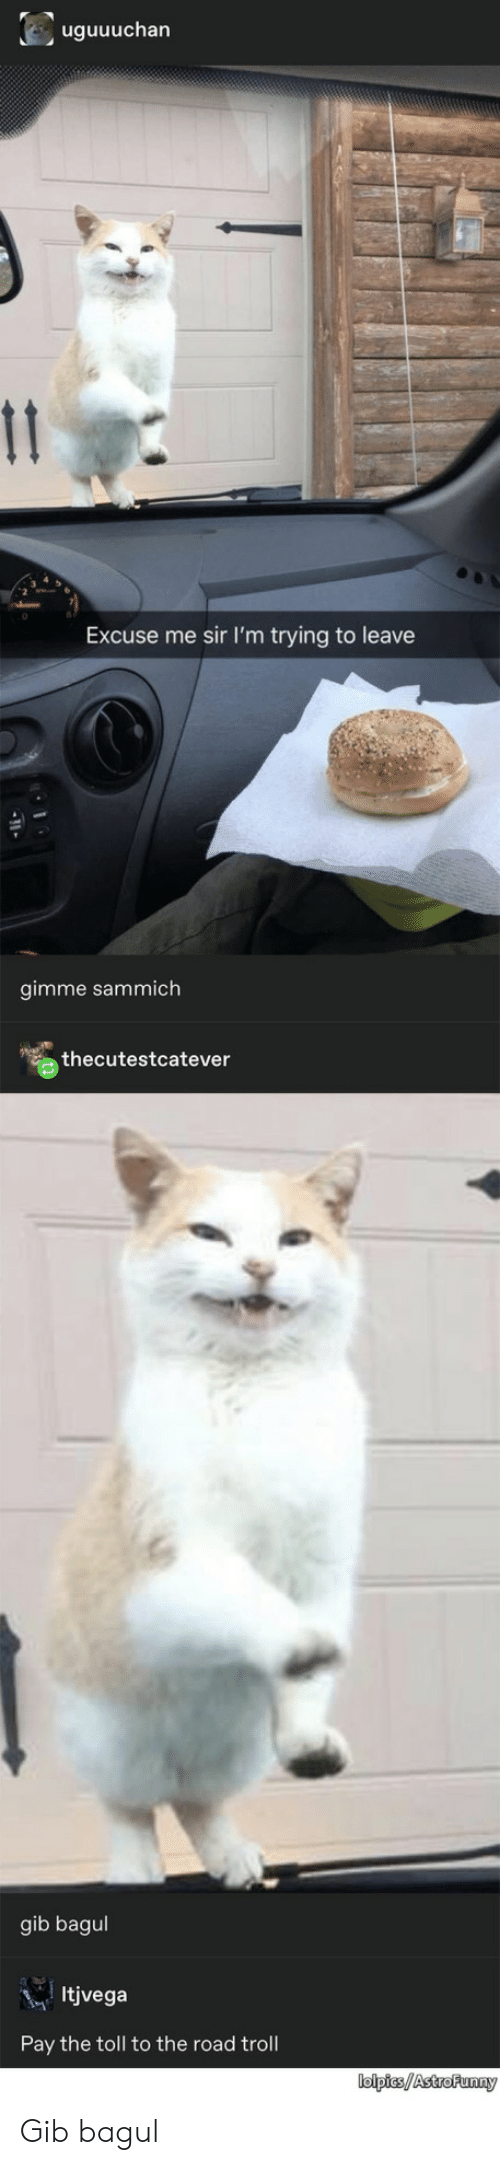 Troll: uguuuchan  11  Excuse me sir I'm trying to leave  gimme sammich  thecutestcatever  gib bagul  Itjvega  Pay the toll to the road troll  lolpies/AstroFunny Gib bagul